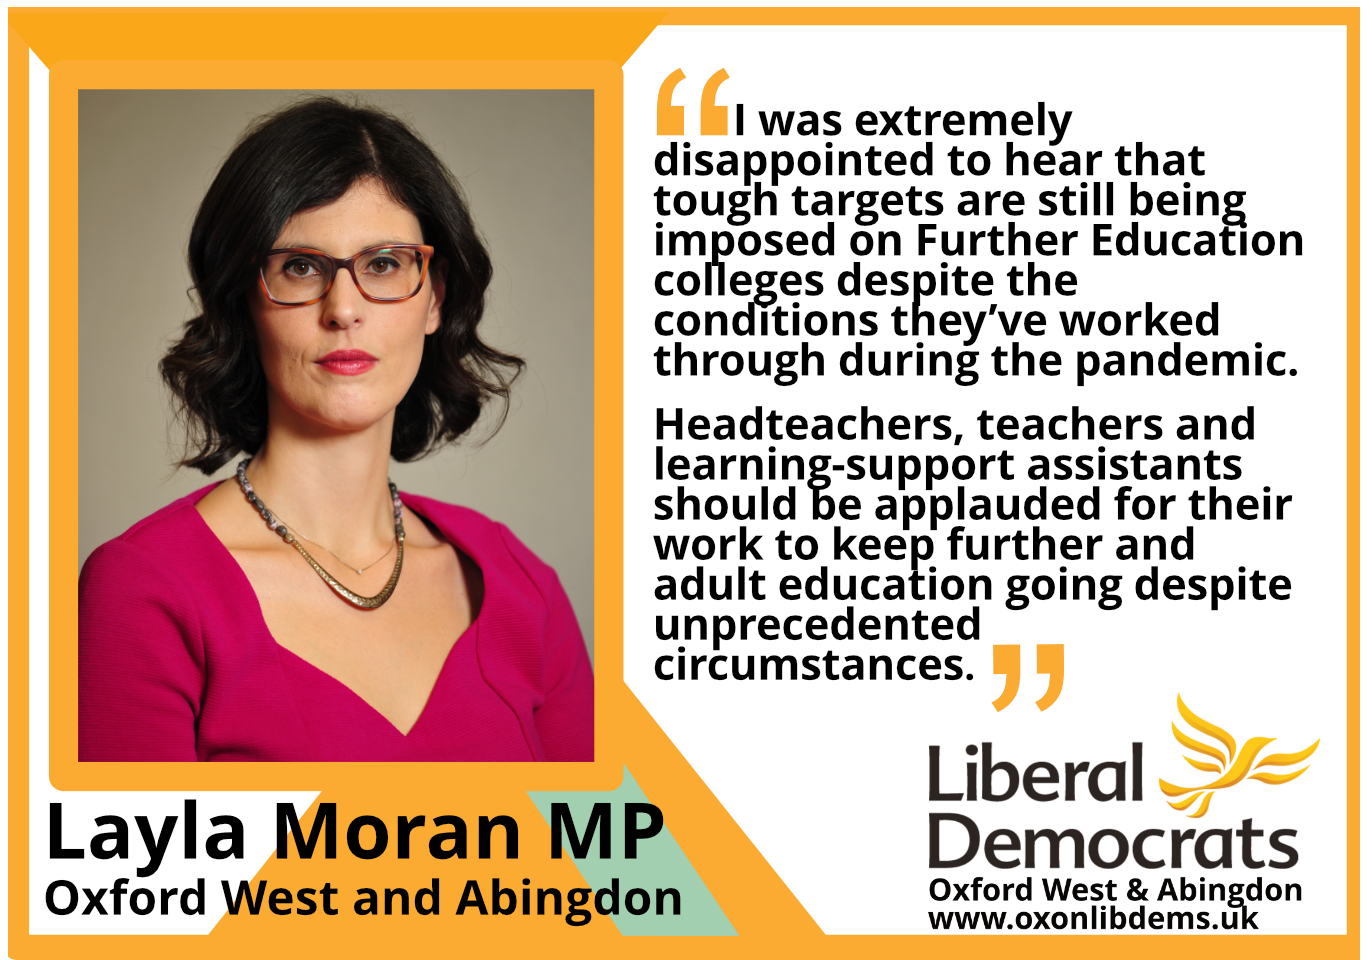 I was extremely disappointed to hear that tough targets are still being imposed on Further Education colleges despite the conditions they've worked through during the pandemic. Headteachers, teachers and learning-support assistants should be applauded for their work to keep further and adult education going despite unprecedented circumstances.